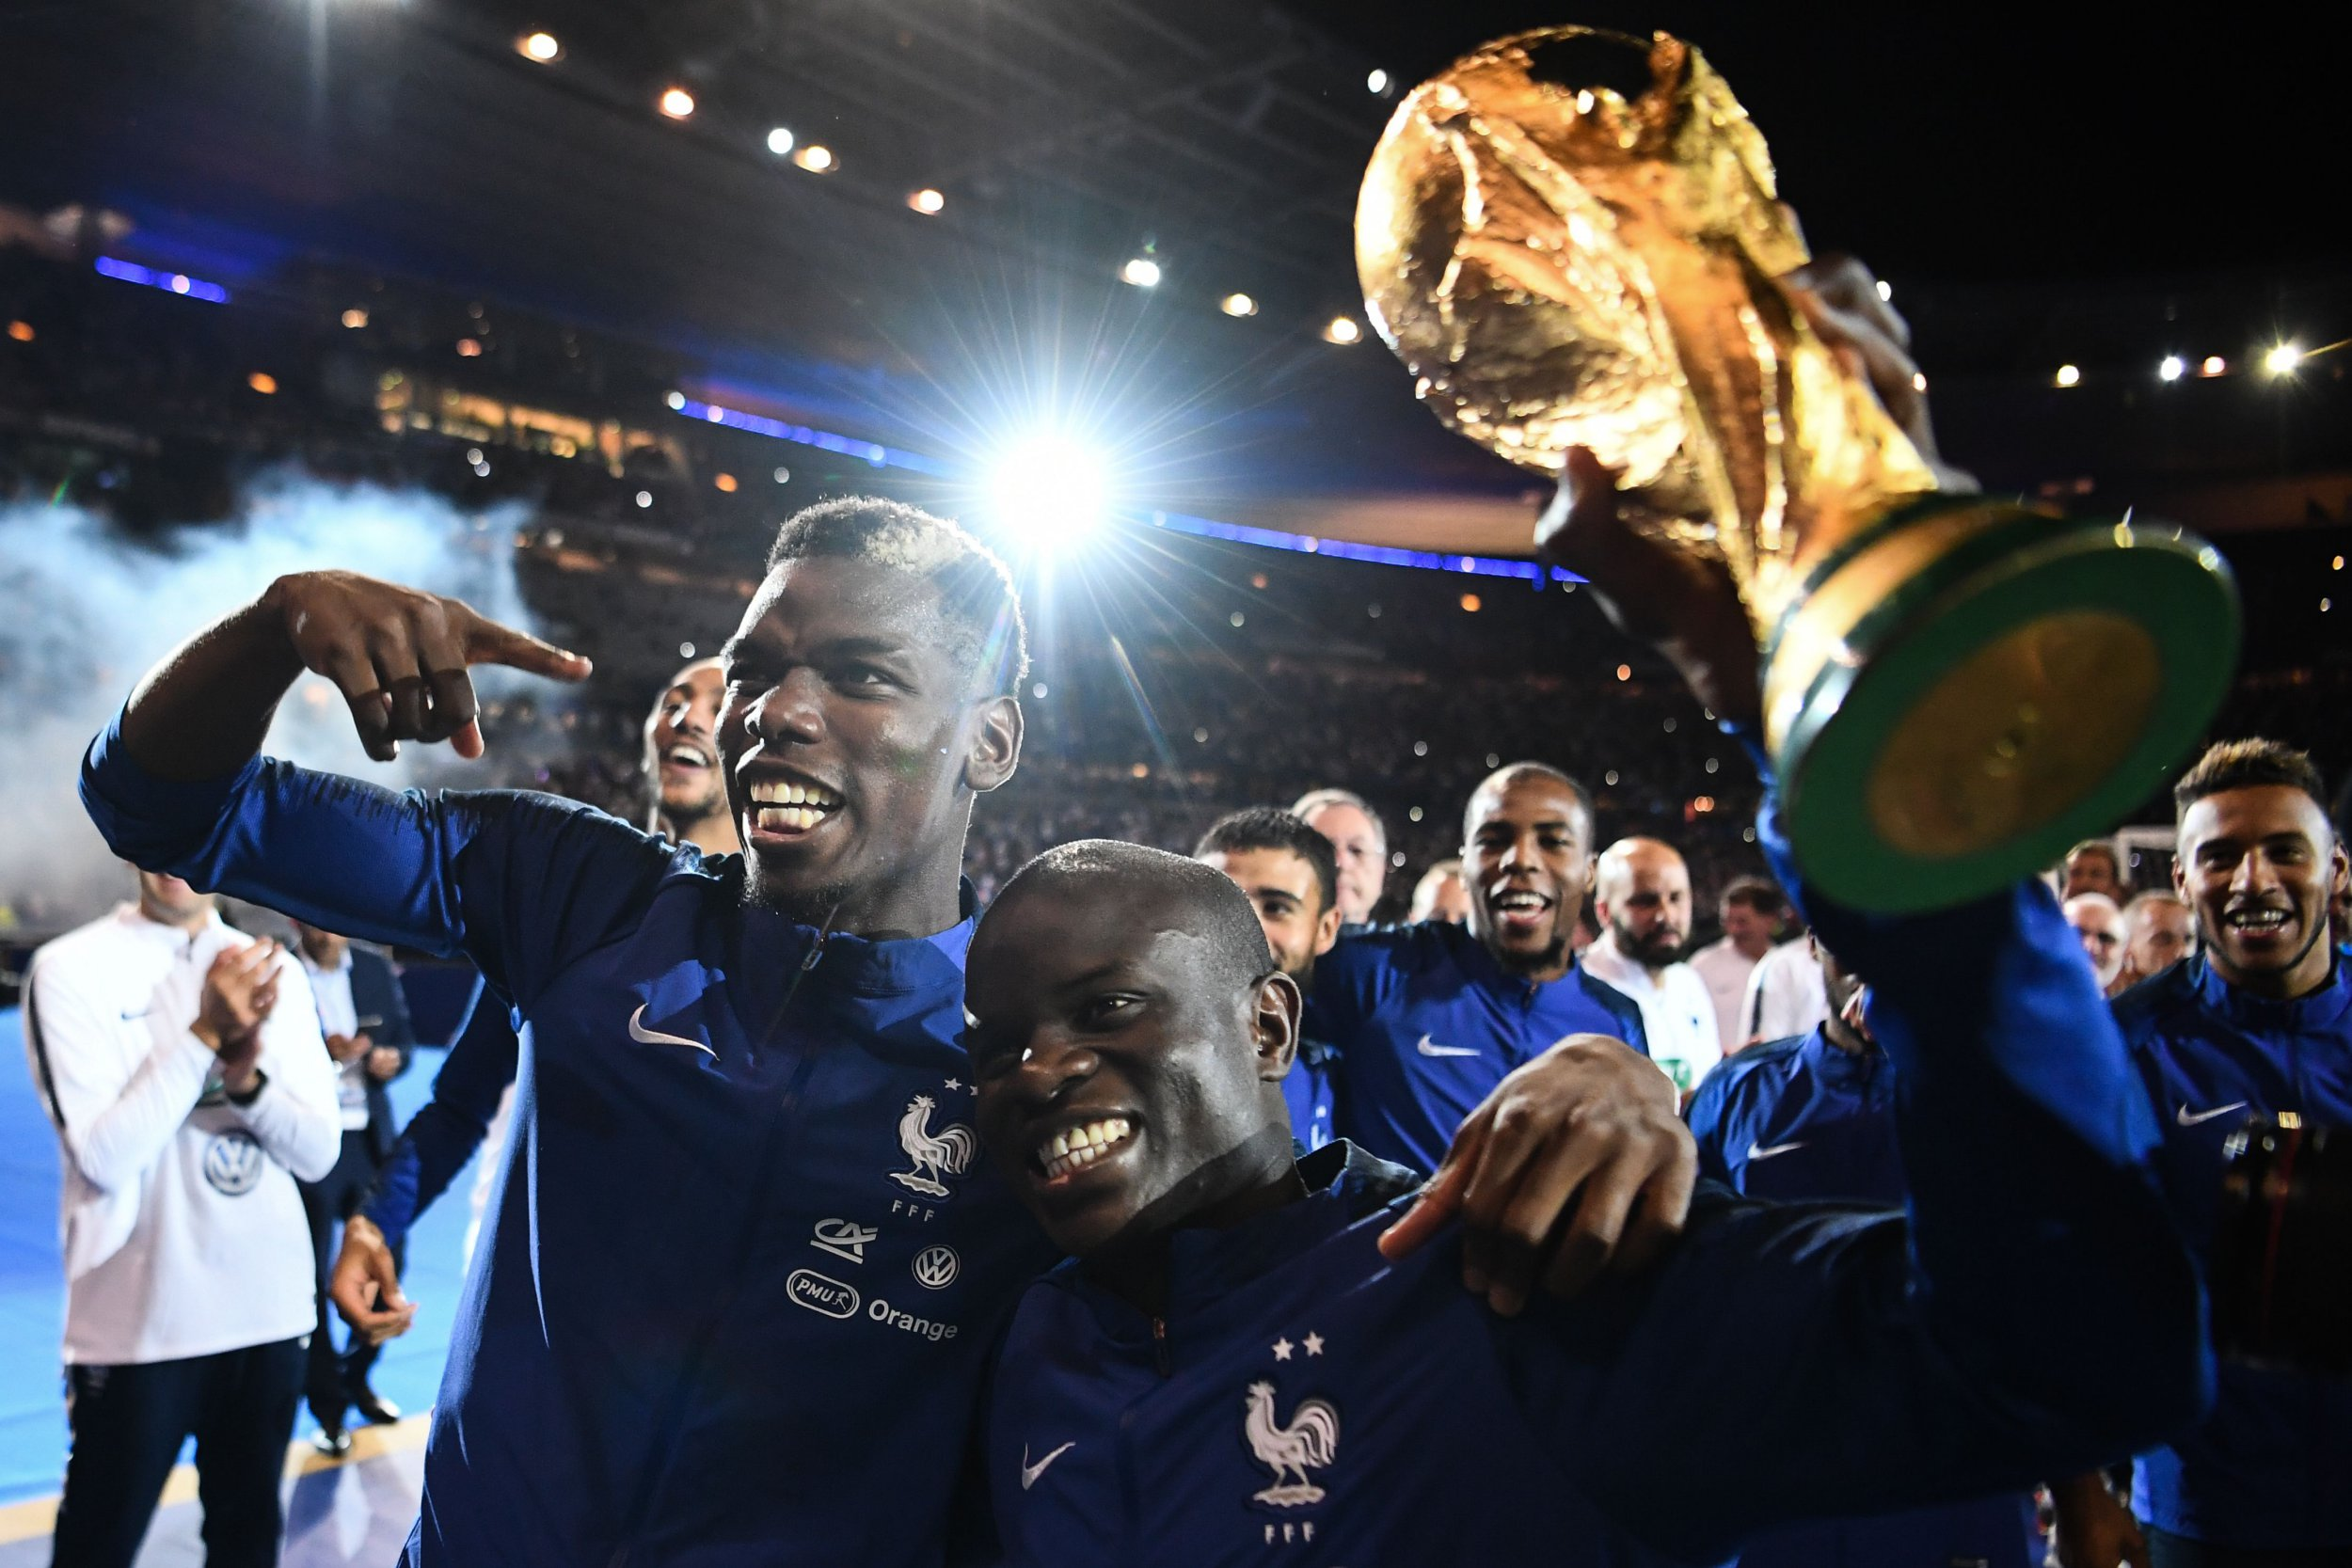 France's midfielder Paul Pogba (L) and France's defender N'golo Kante hold the 2018 World Cup trophy as they celebrate during a ceremony for the victory of the 2018 World Cup at the end of the UEFA Nations League football match between France and Netherlands at the Stade de France stadium, in Saint-Denis, northern of Paris, on September 9, 2018. (Photo by FRANCK FIFE / AFP)FRANCK FIFE/AFP/Getty Images